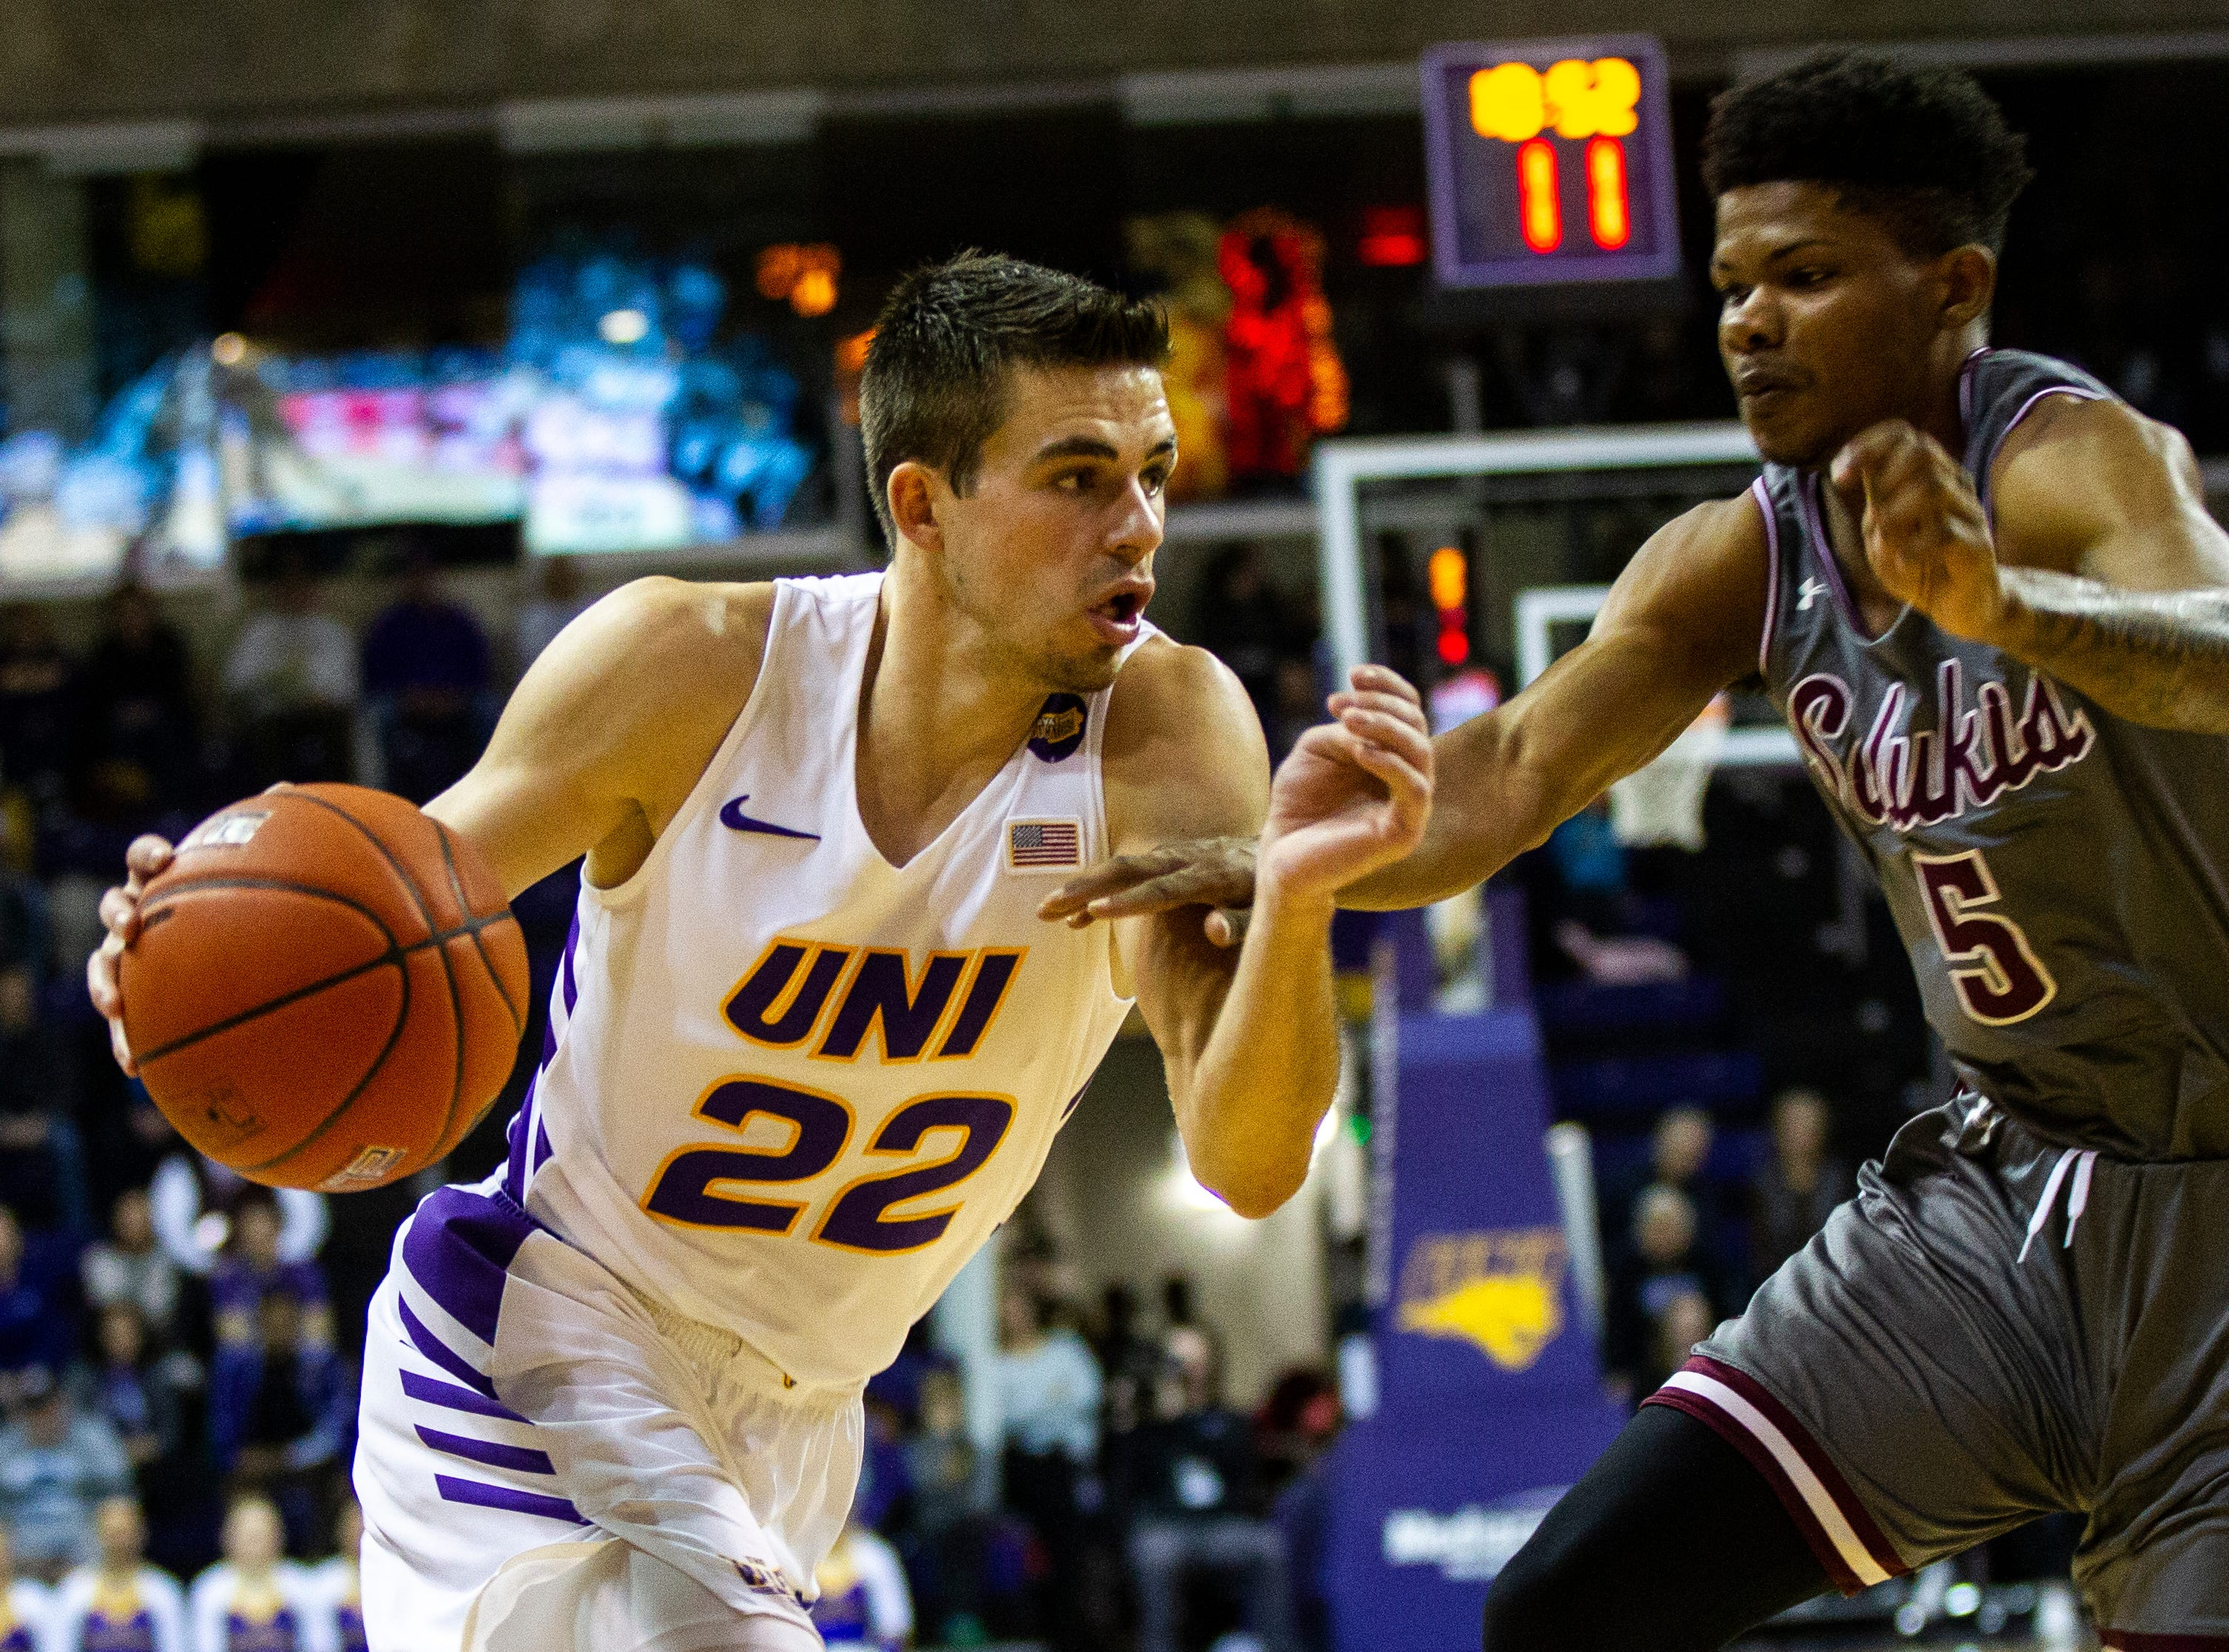 Northern Iowa guard Wyatt Lohaus (22) drives to the basket past Southern Illinois guard Darius Beane (5) during a NCAA Missouri Valley Conference men's basketball game on Saturday, Jan. 5, 2019, at the McLeod Center in Cedar Falls, Iowa.